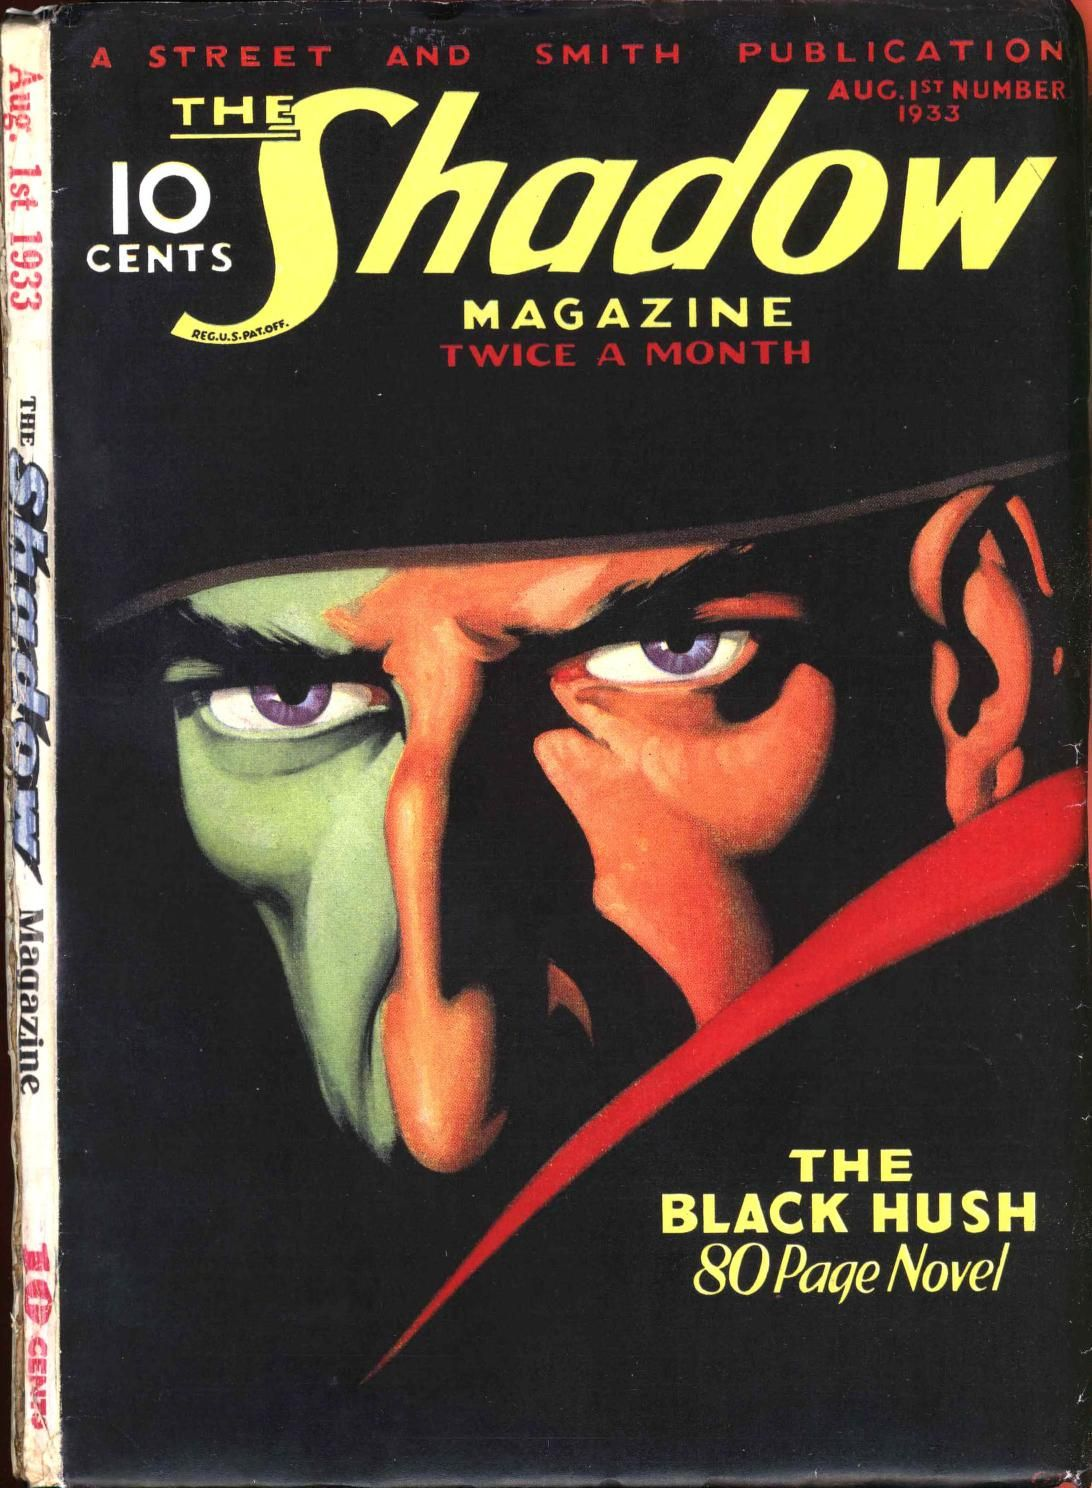 Download The Shadow Magazine, From 1933 From Archive, In Pdf, Epub